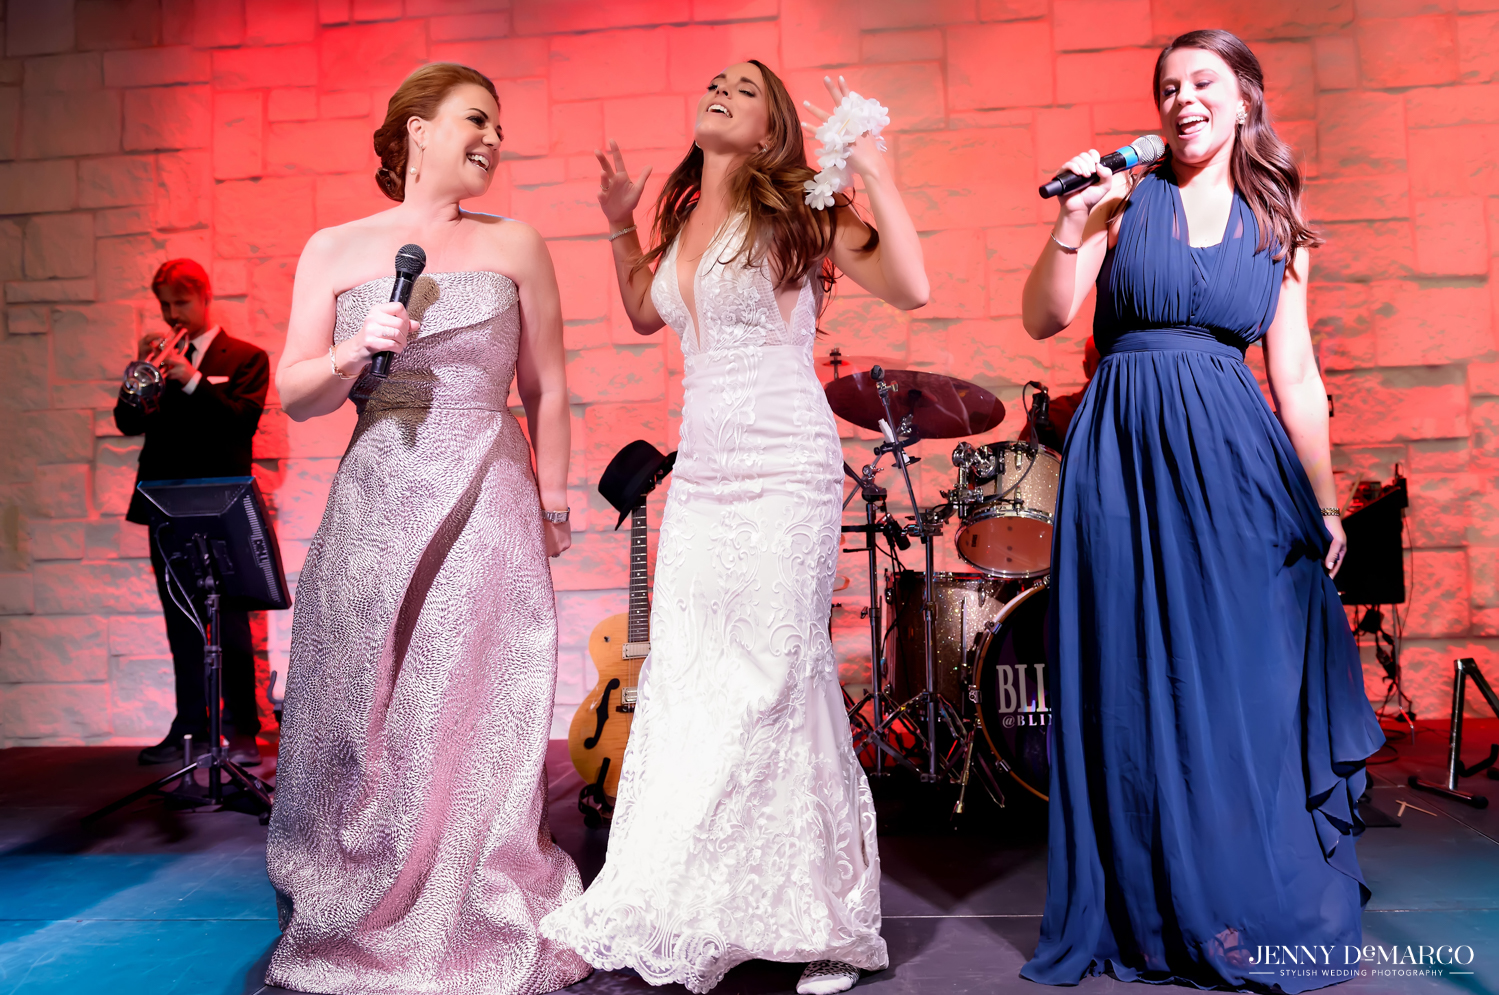 Mother of bride, Bride and sister of bride sing karaoke at wedding reception